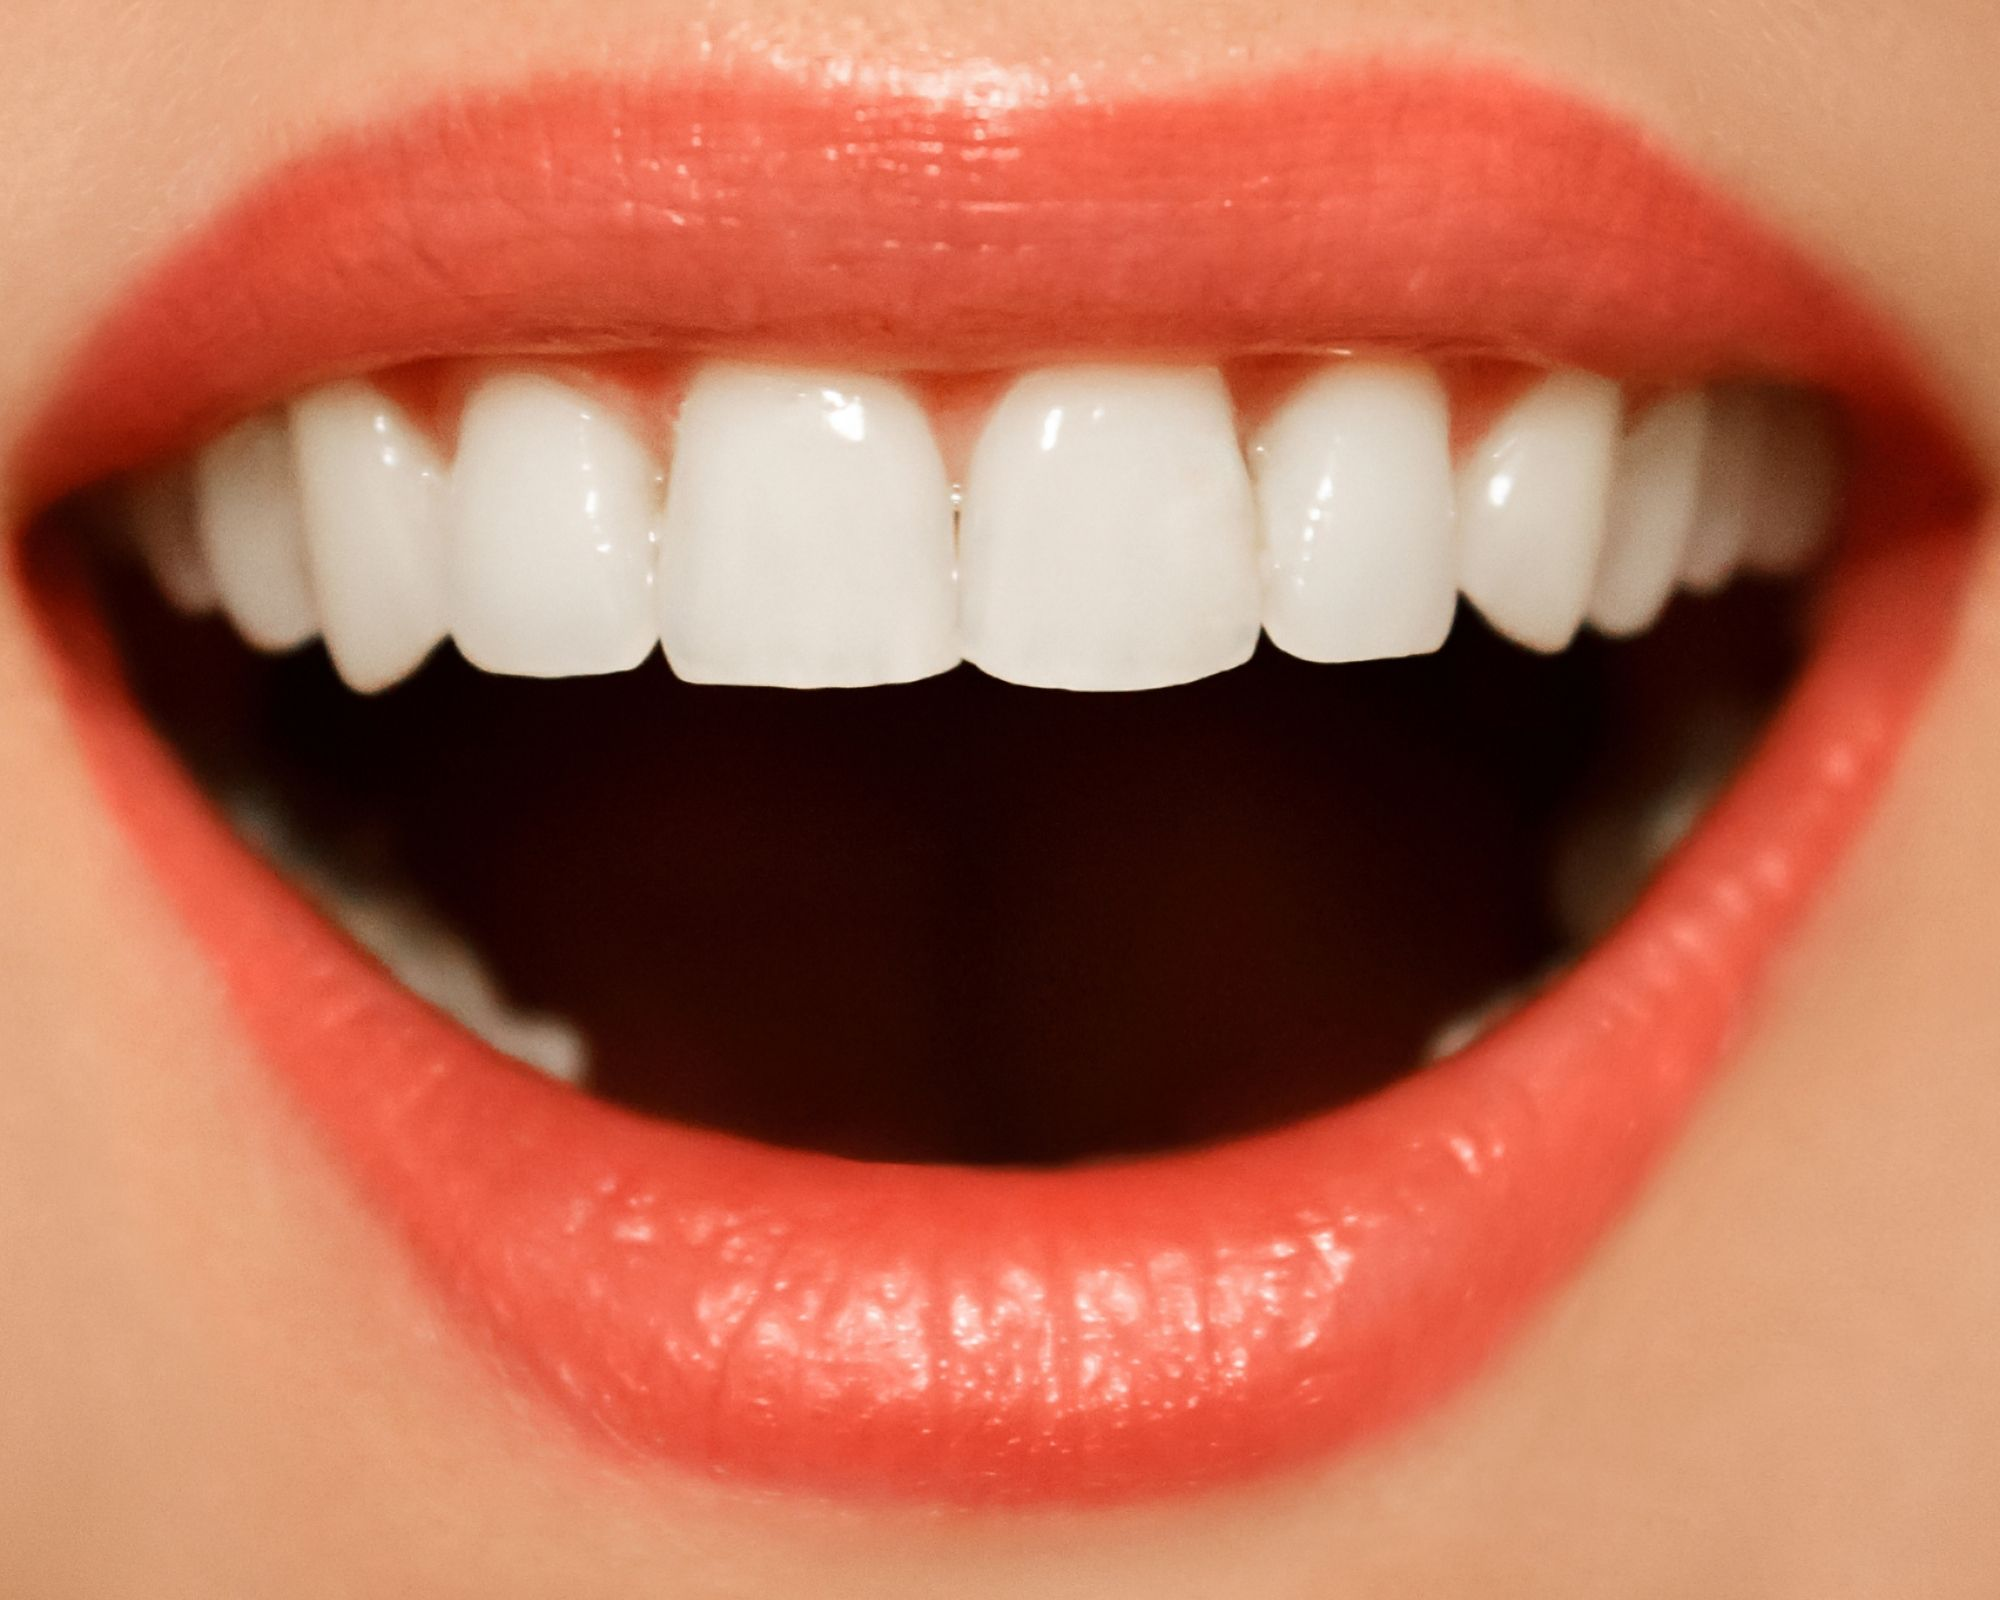 great smile from using flossing tools